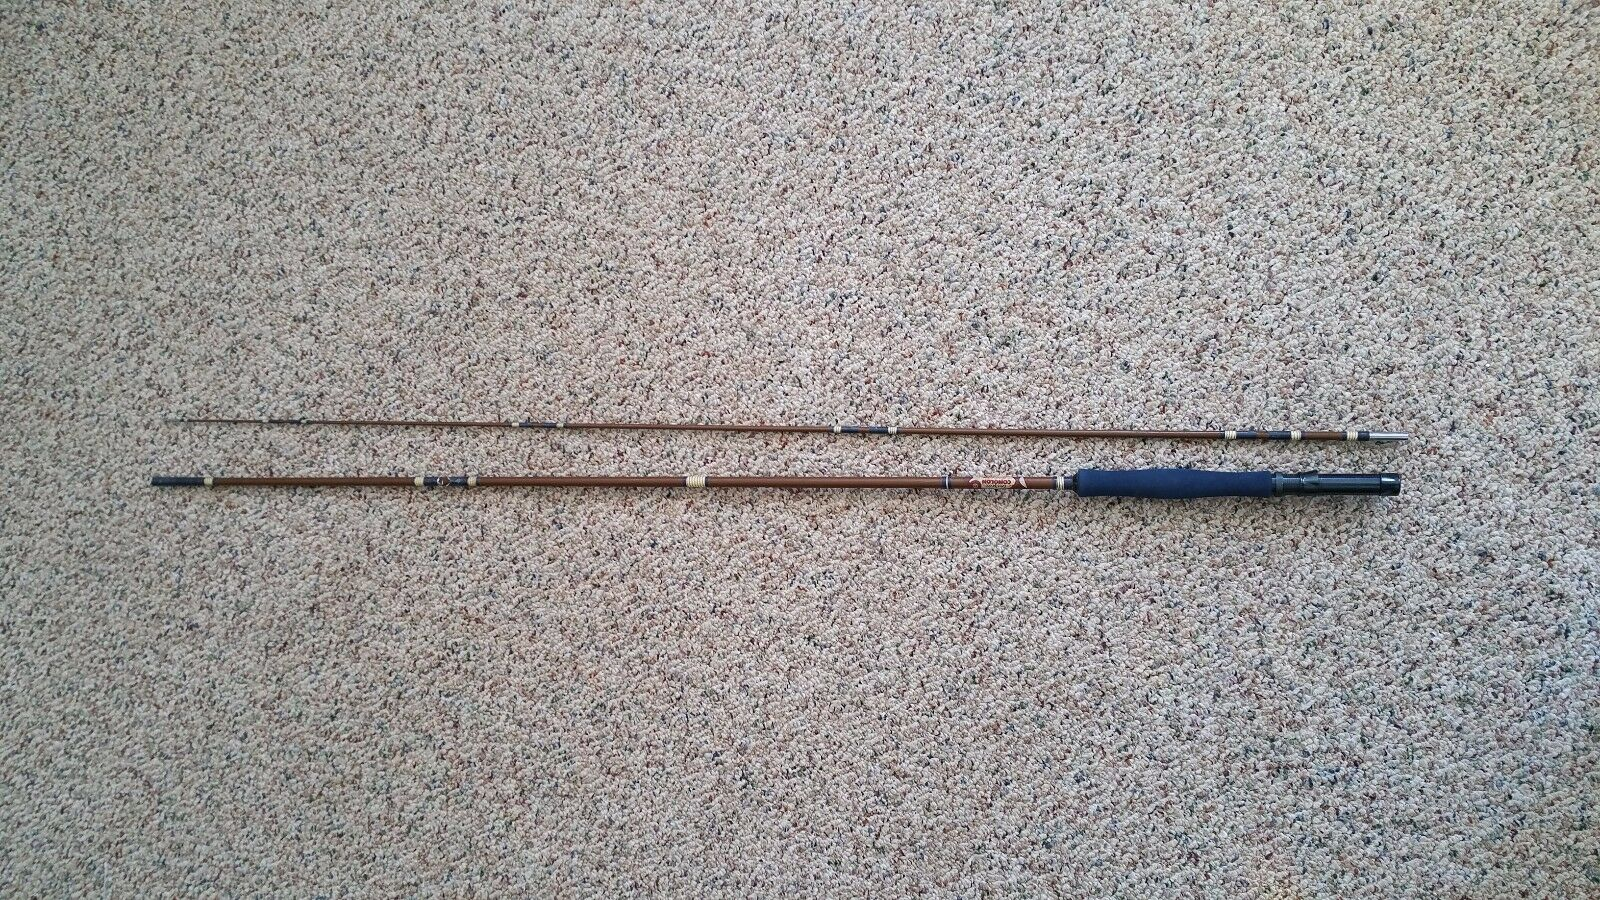 GARCIA CONOLON 8' FLY FISHING ROD VINTAGE  RARE  reasonable price